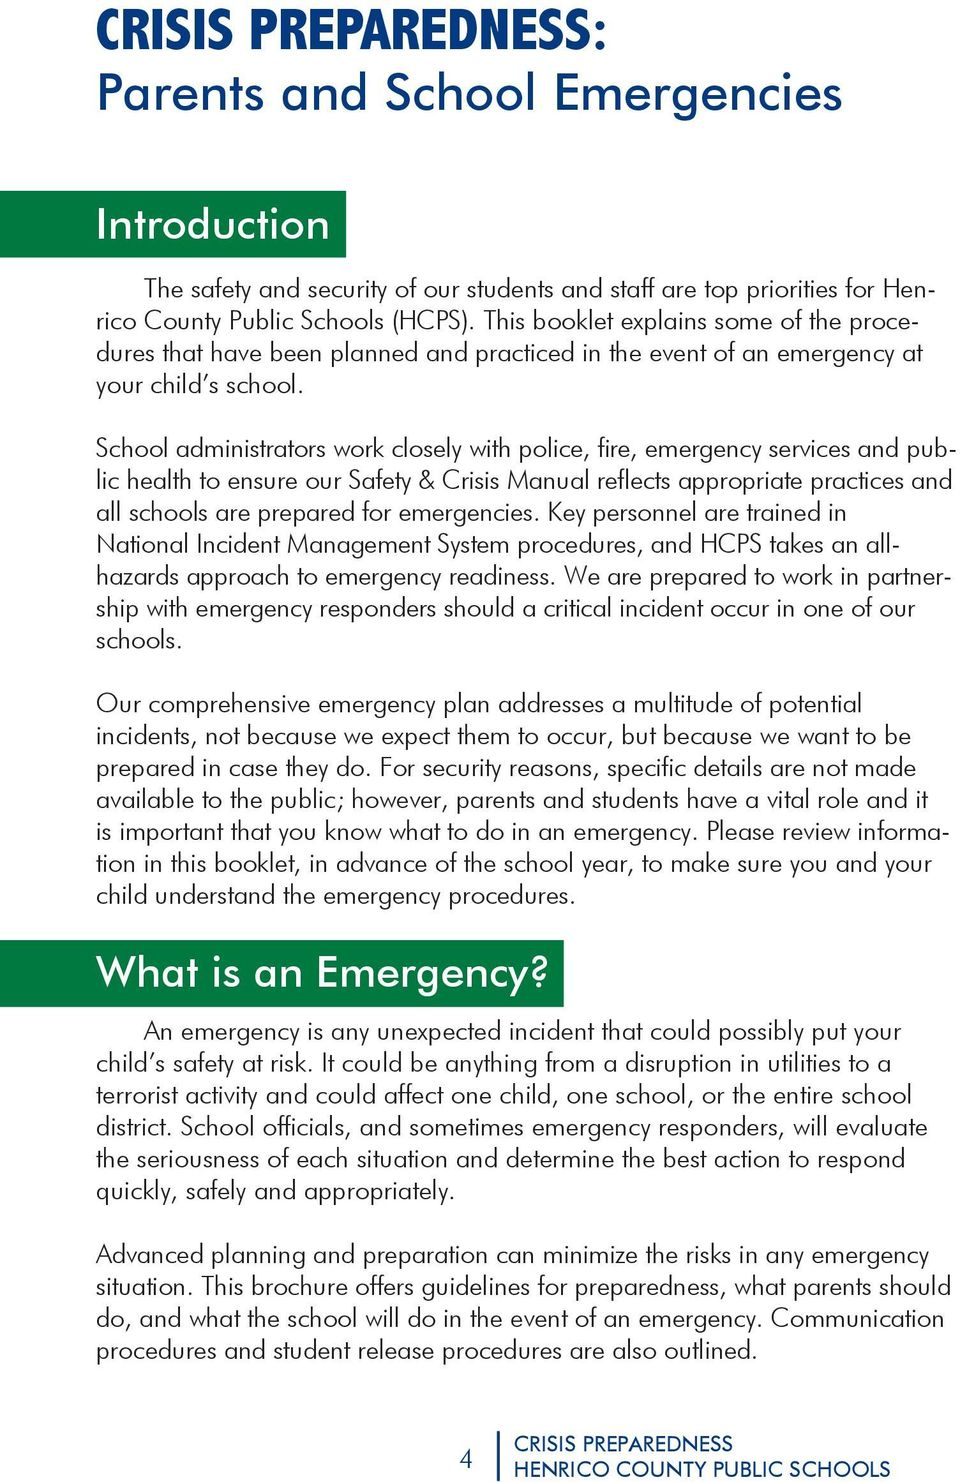 School administrators work closely with police, fire, emergency services and public health to ensure our Safety & Crisis Manual reflects appropriate practices and all schools are prepared for